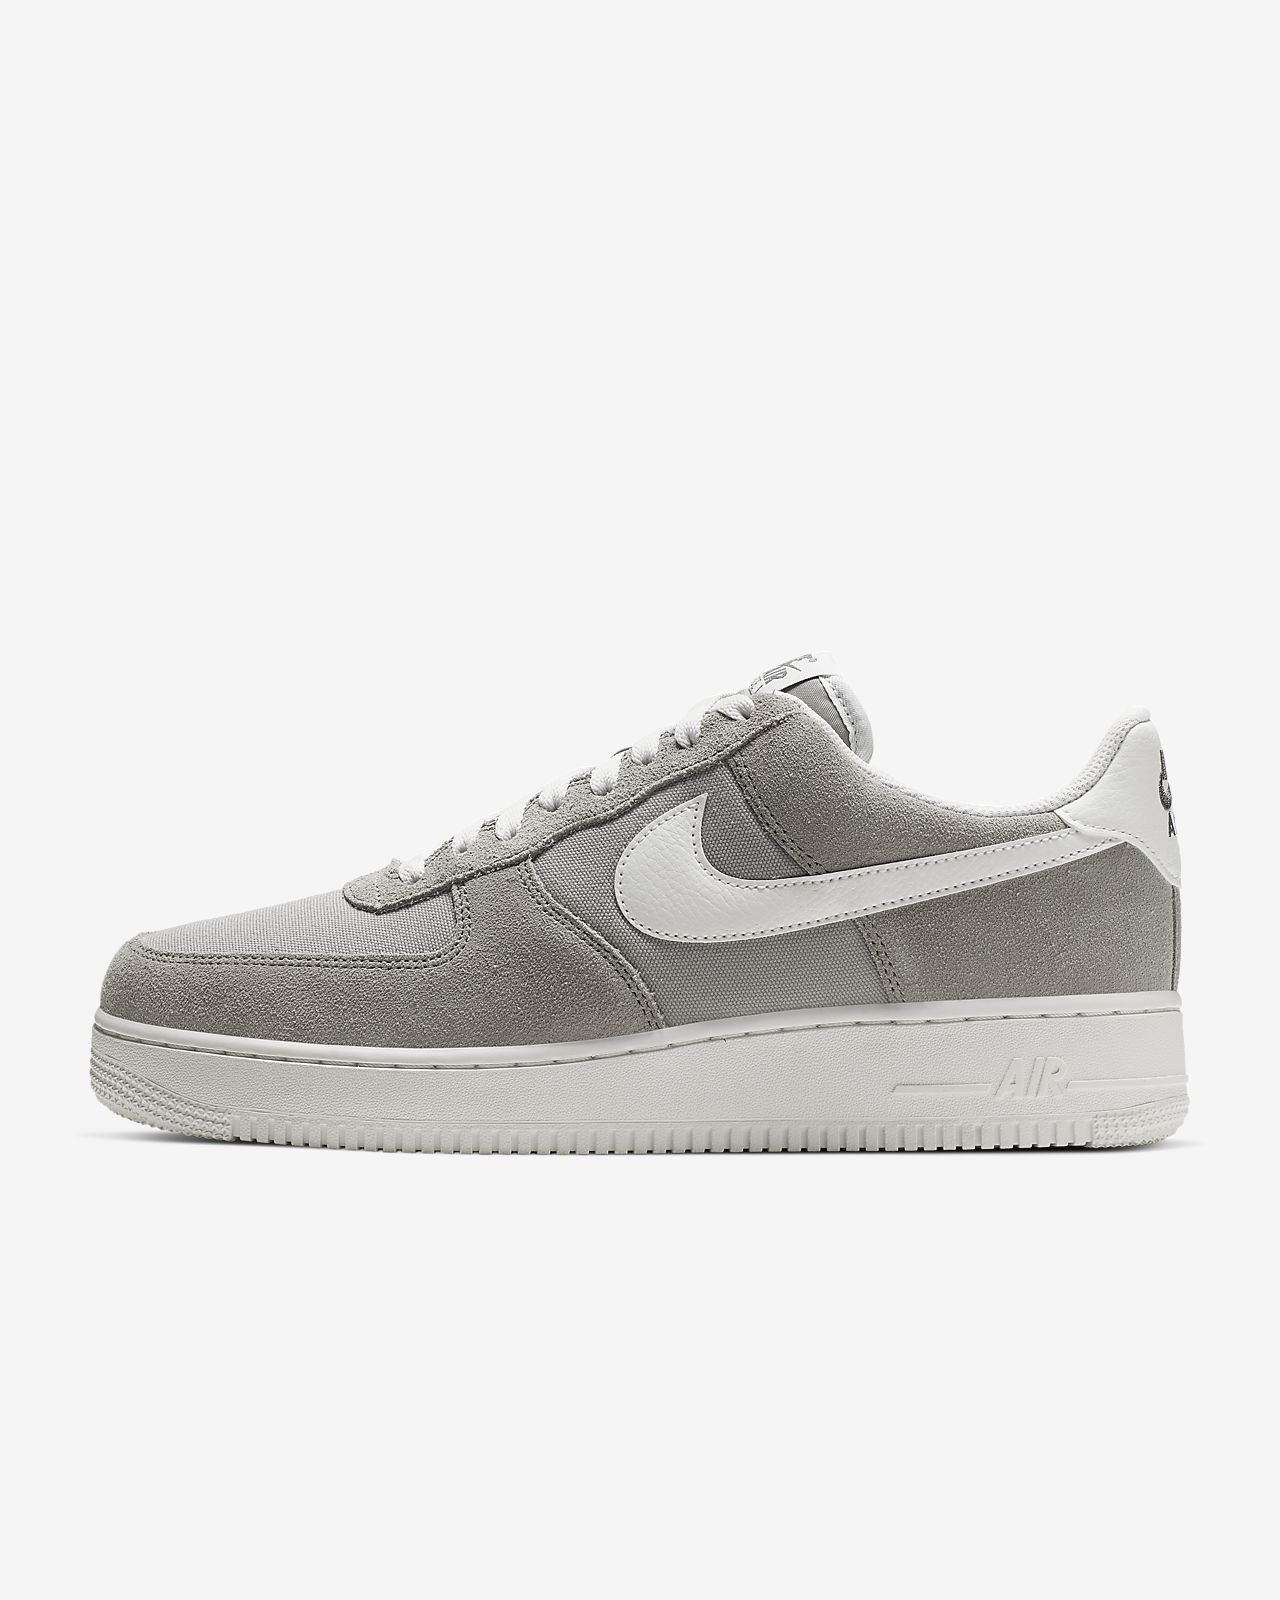 be8ac0727f843 Nike Air Force 1 '07 Men's Shoe. Nike.com